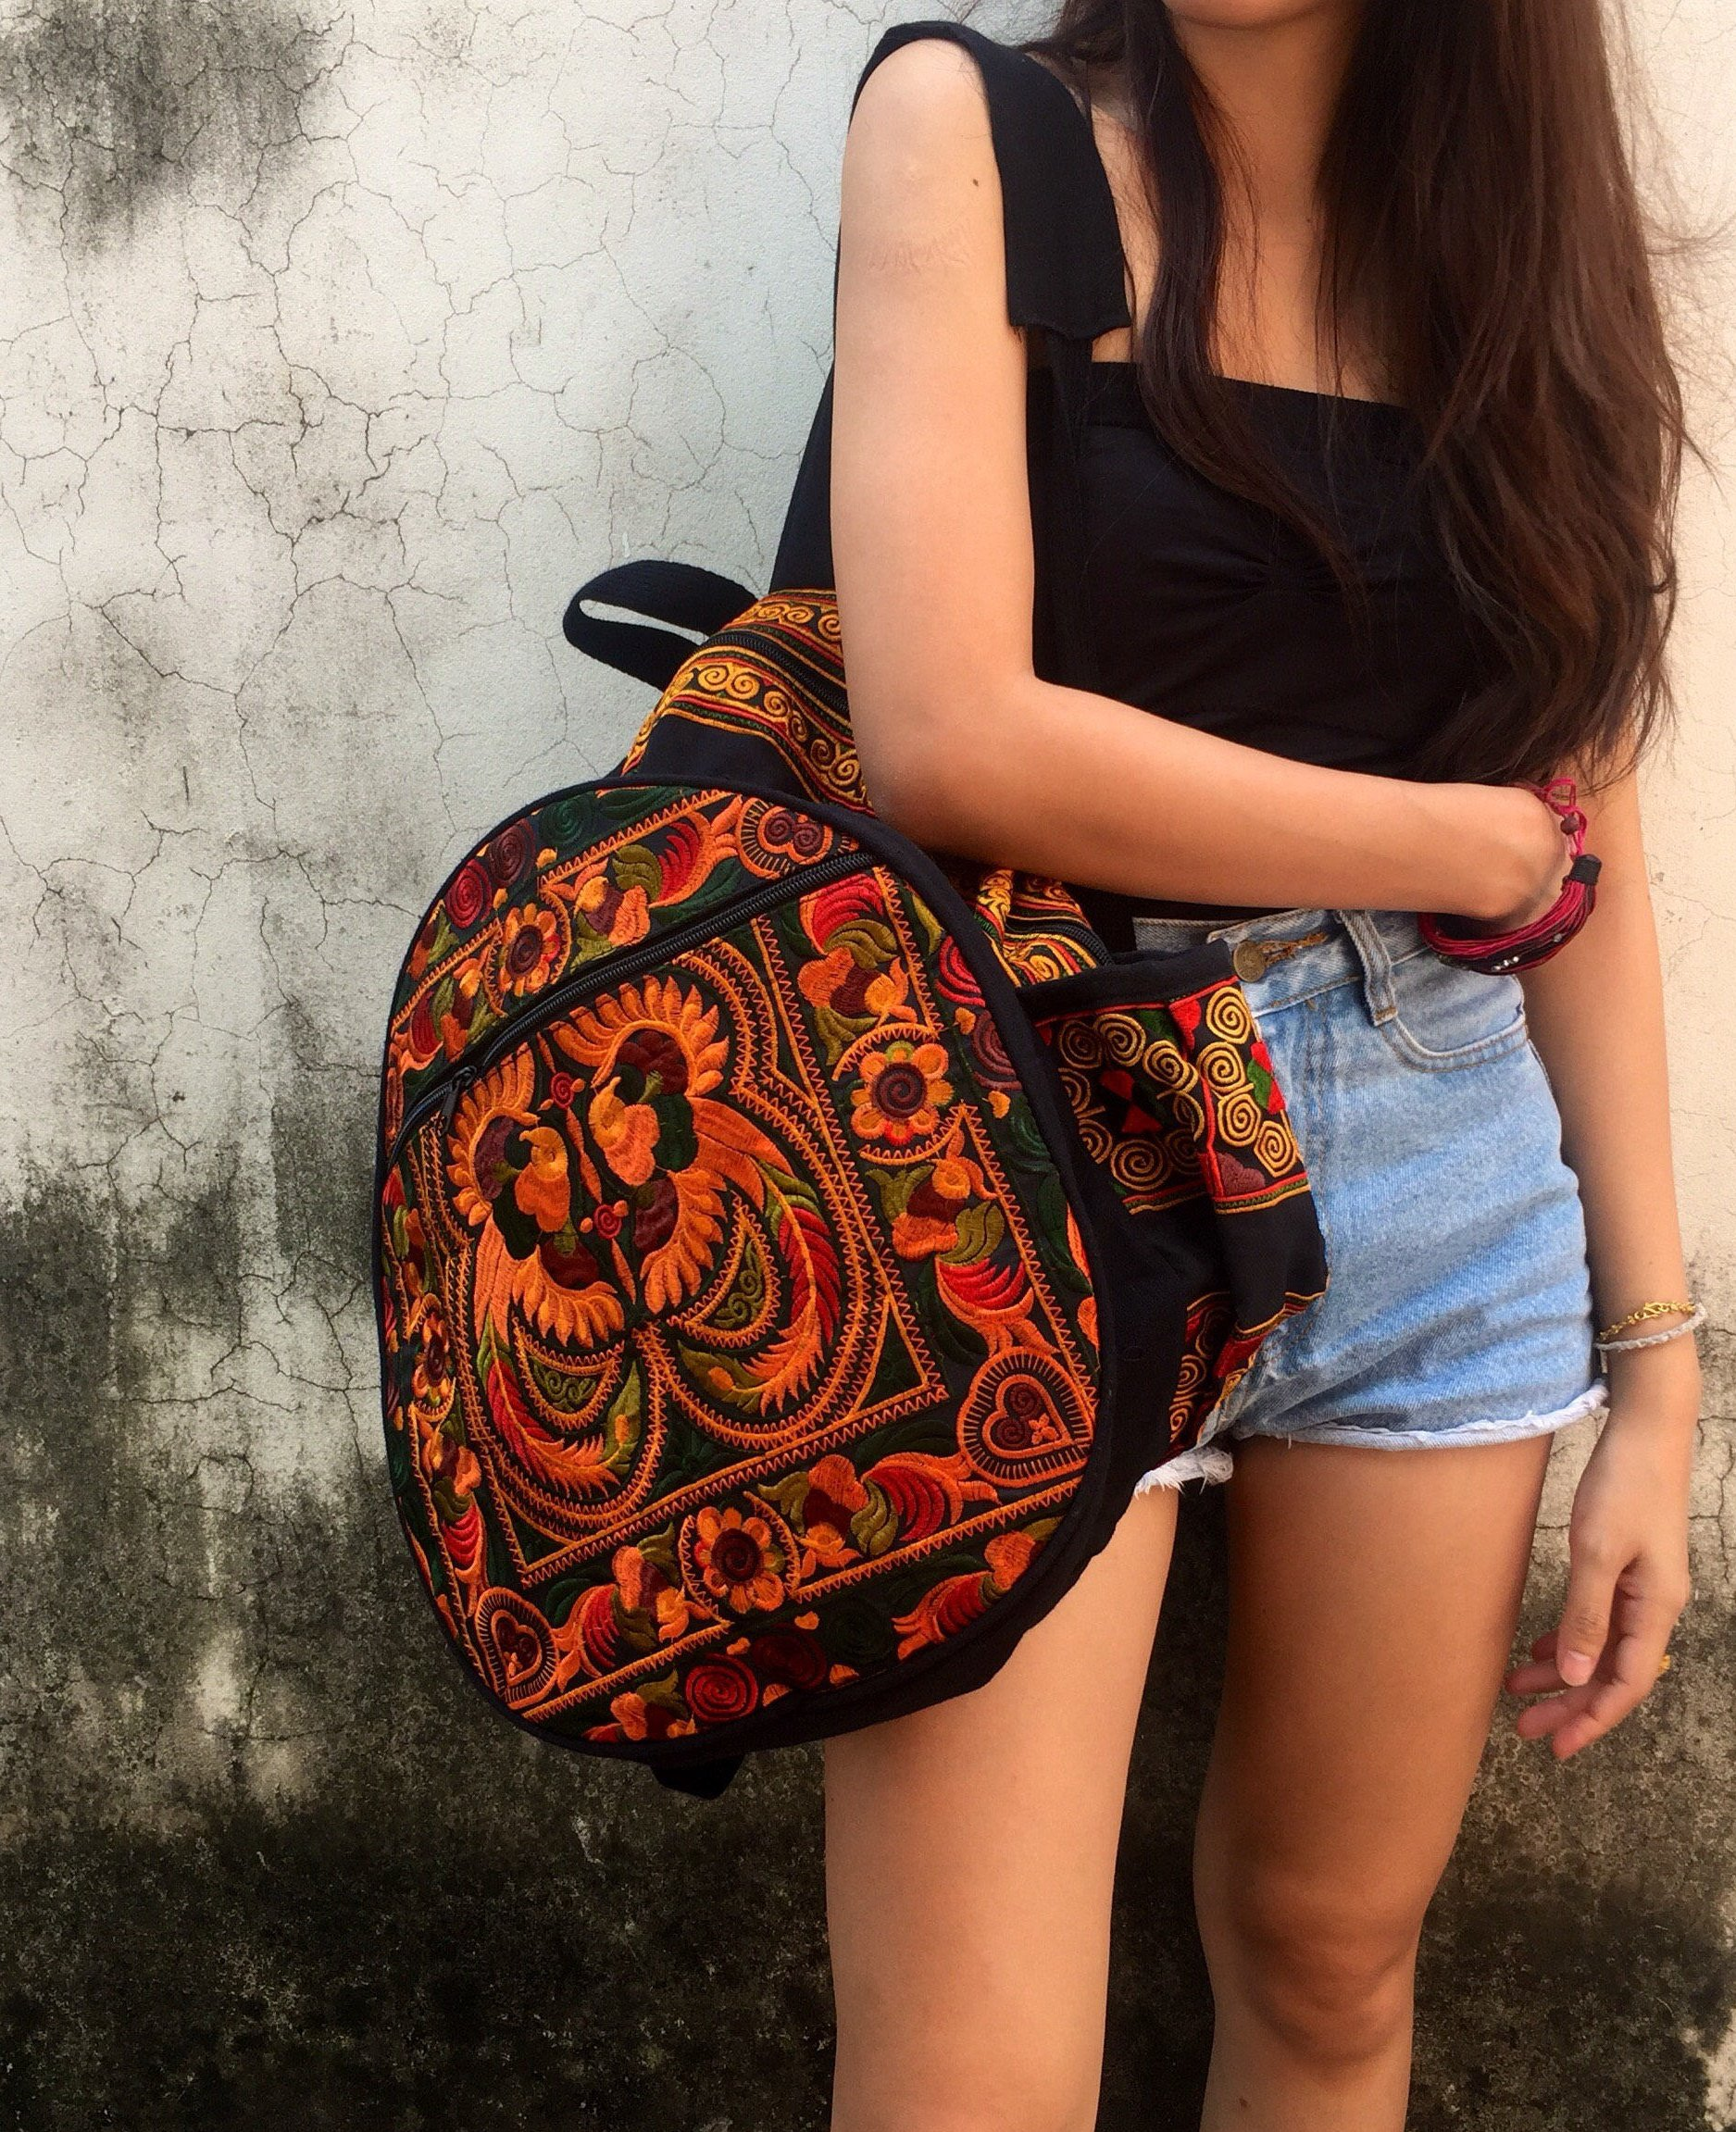 Backpack Tribal Embroidered Bohemian Hippie Retro Hmong Flower fabric Festival Travel Luggage School backpack bucket bag Women Gifts Trippy